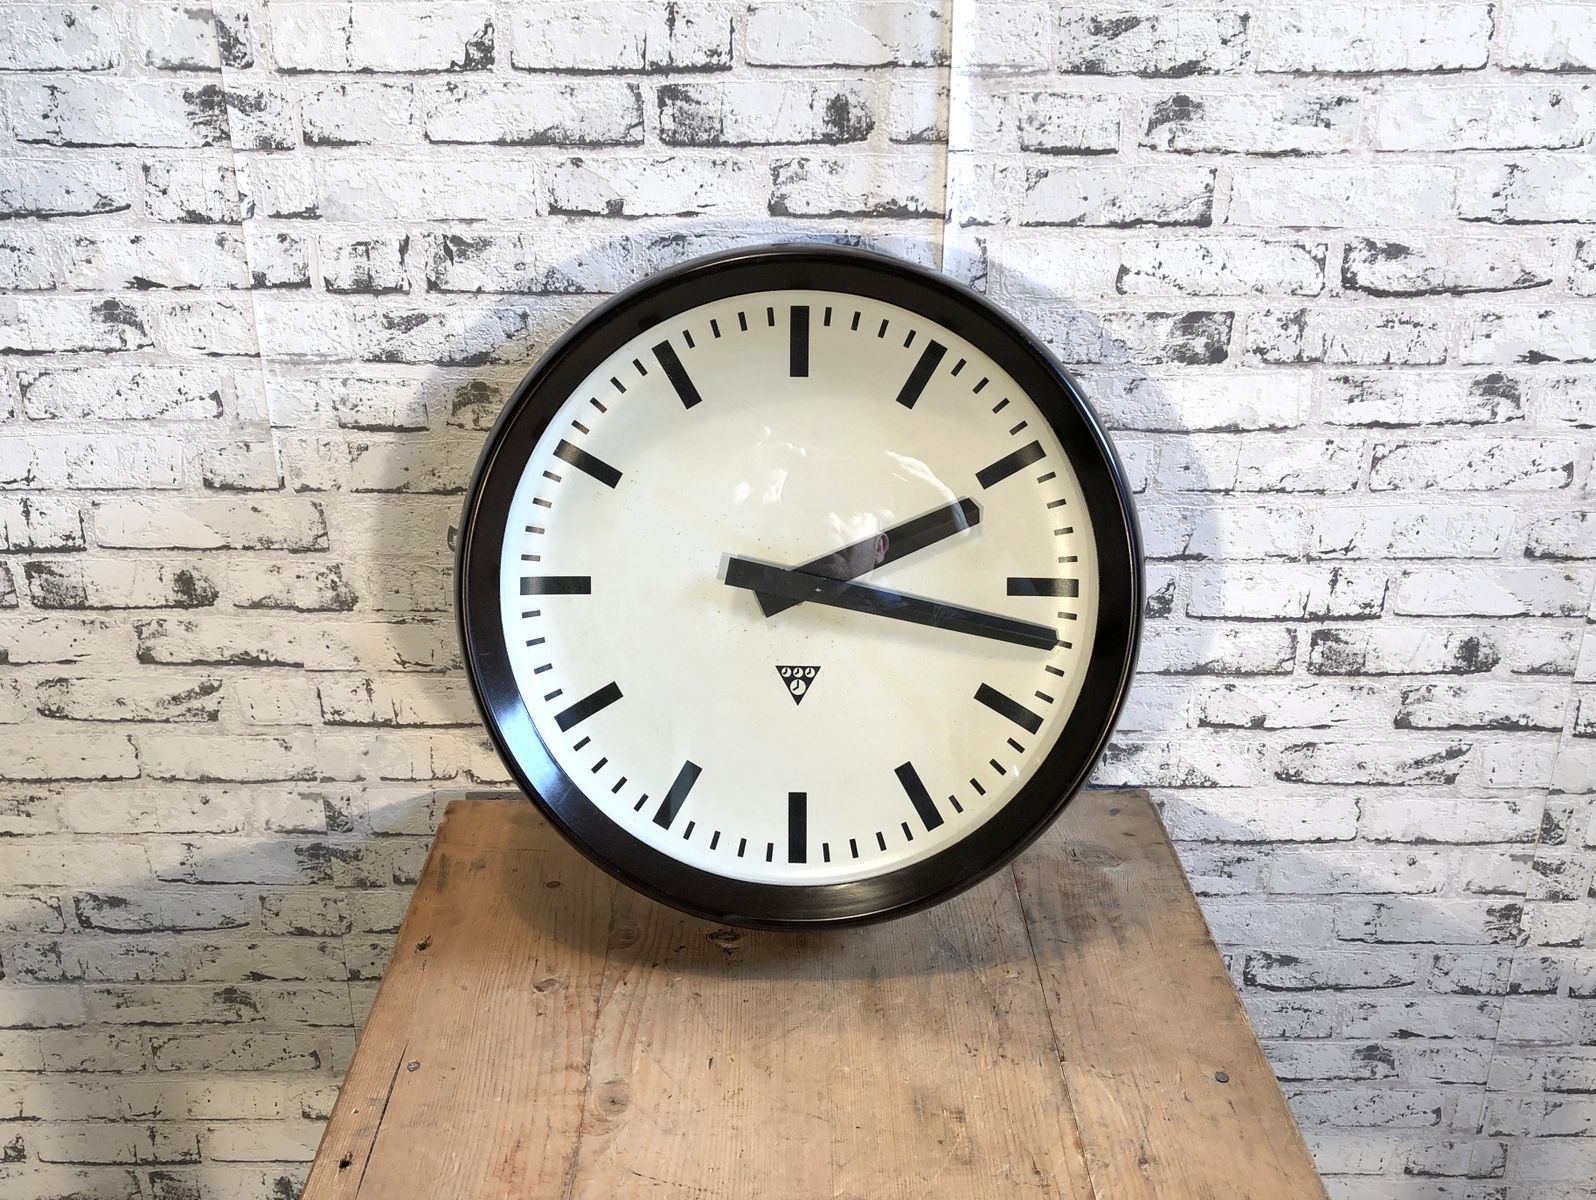 grande horloge murale d 39 usine industrielle en bak lite de pragotron 1960s en vente sur pamono. Black Bedroom Furniture Sets. Home Design Ideas